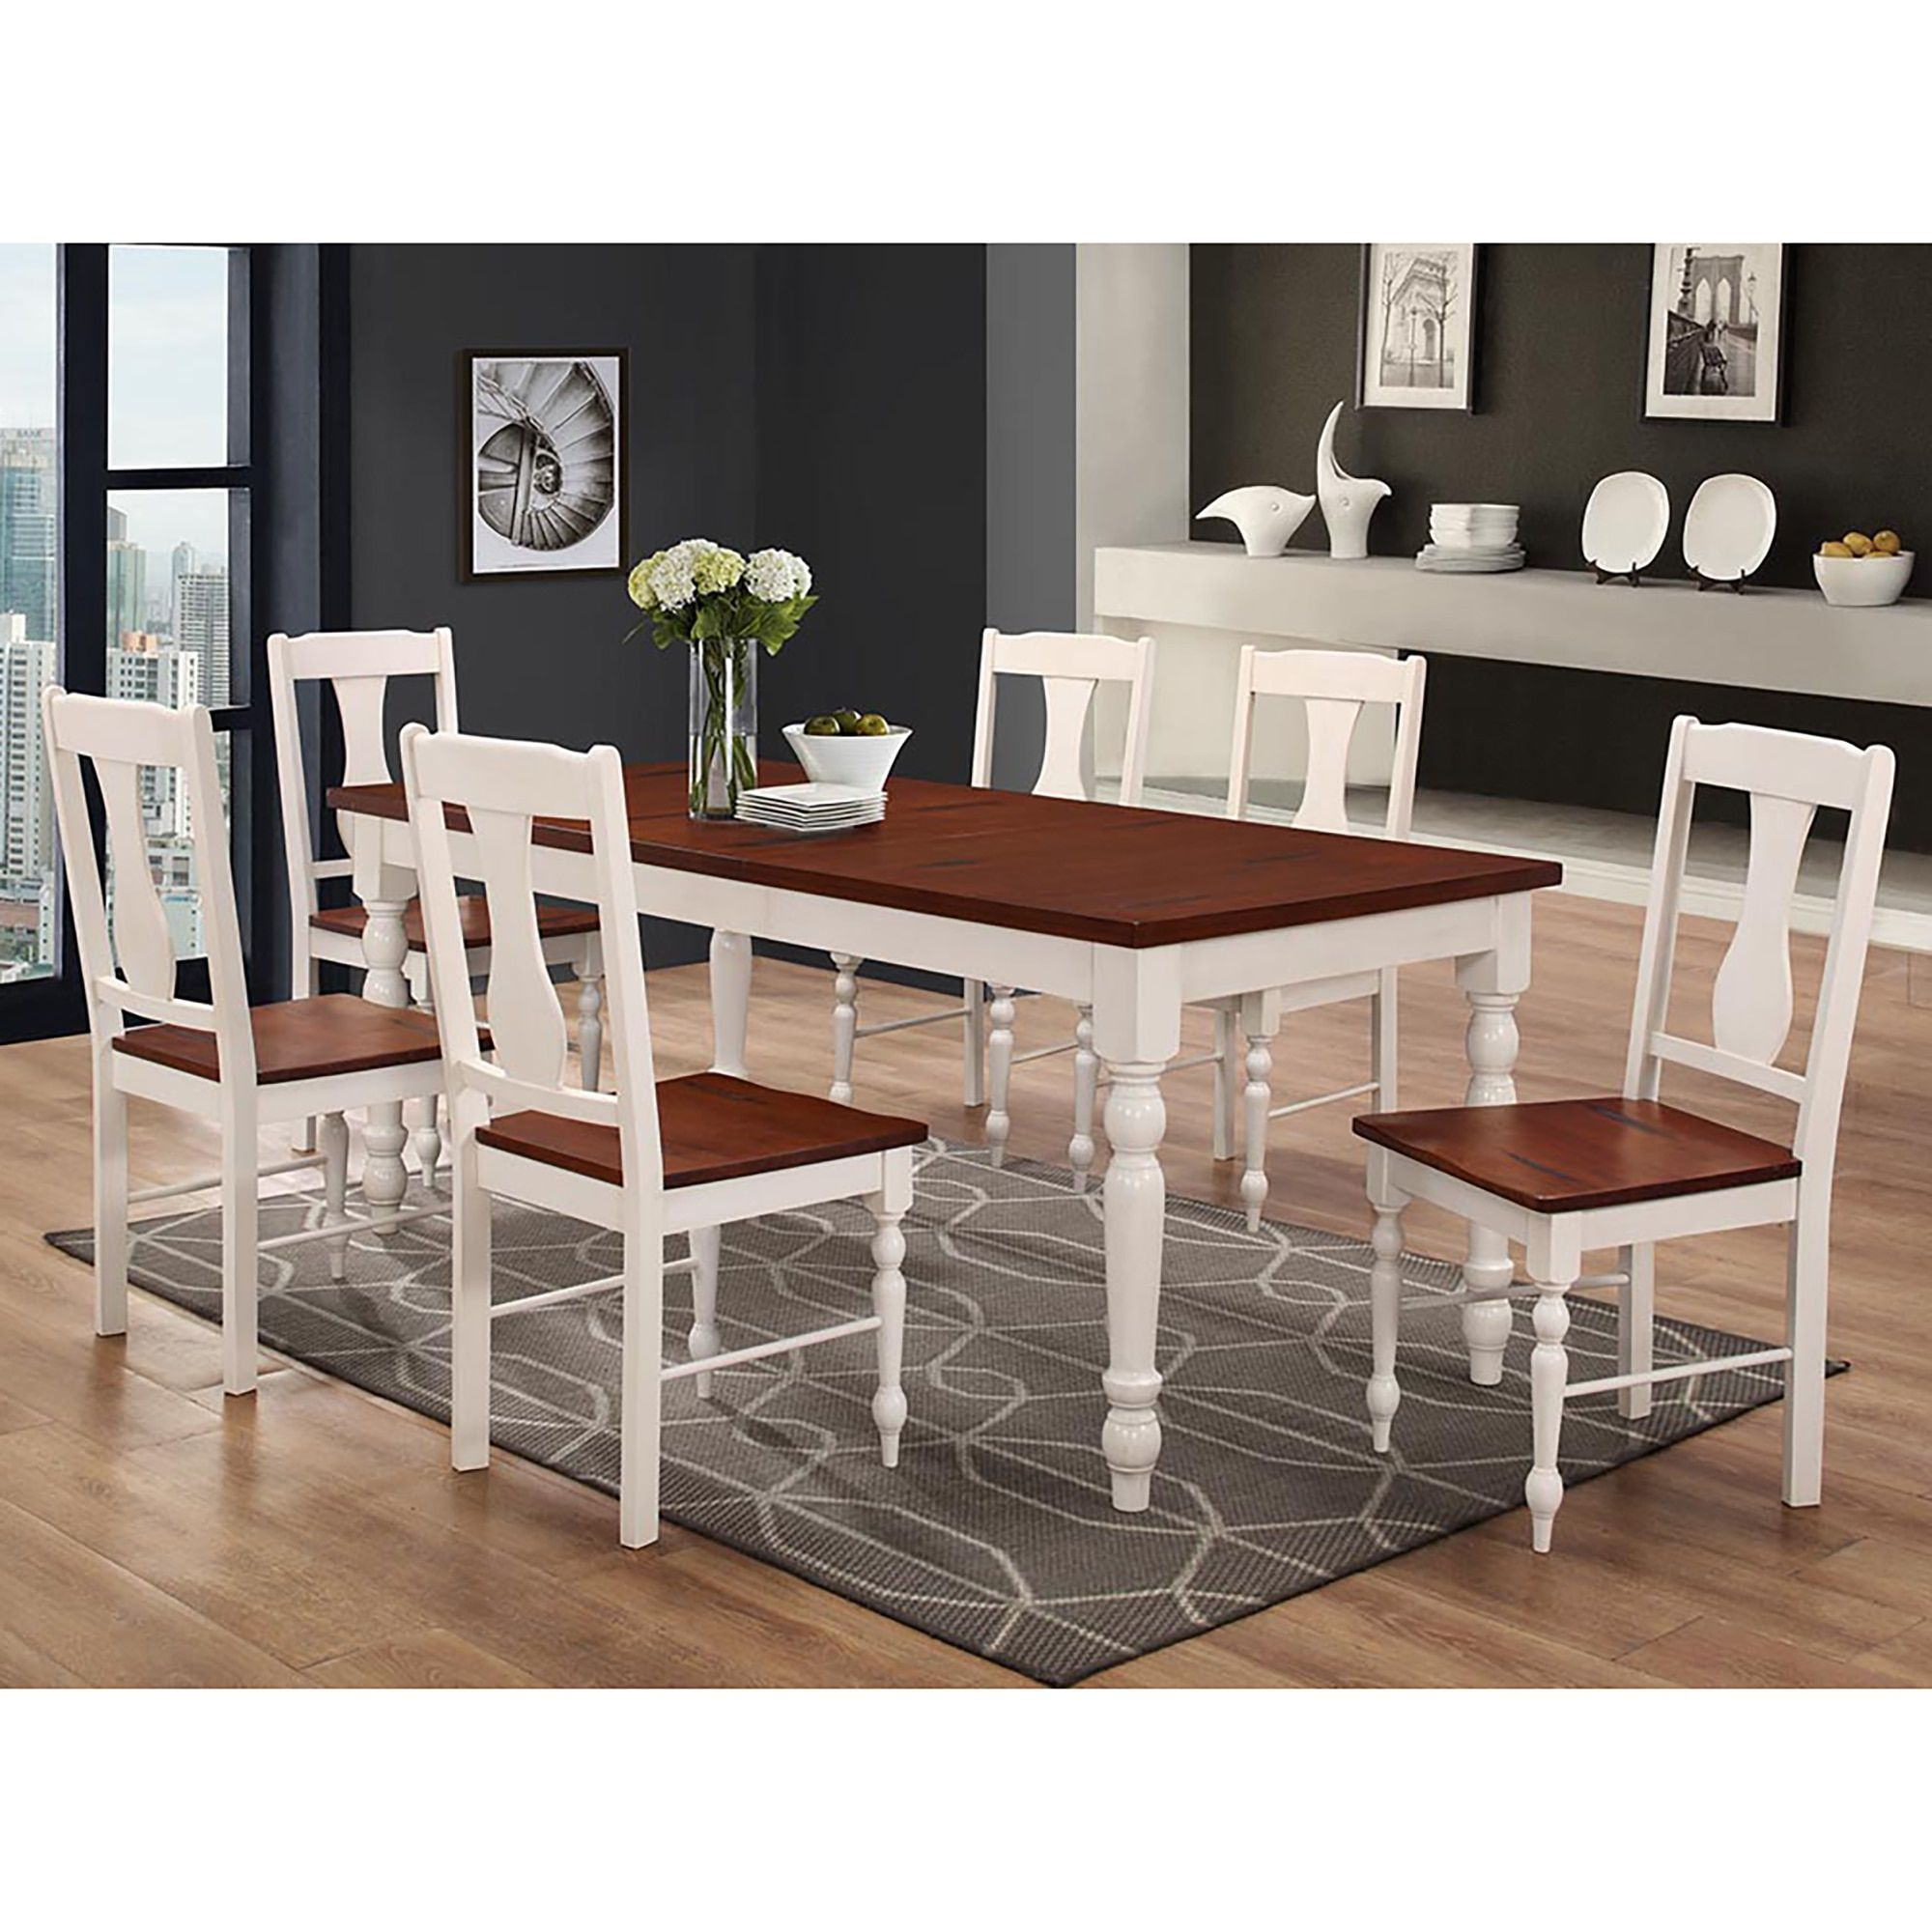 7Piece Two Toned Solid Wood Dining Set Brown Size 7Piece Sets Cool Dining Room Sets Solid Wood Design Decoration